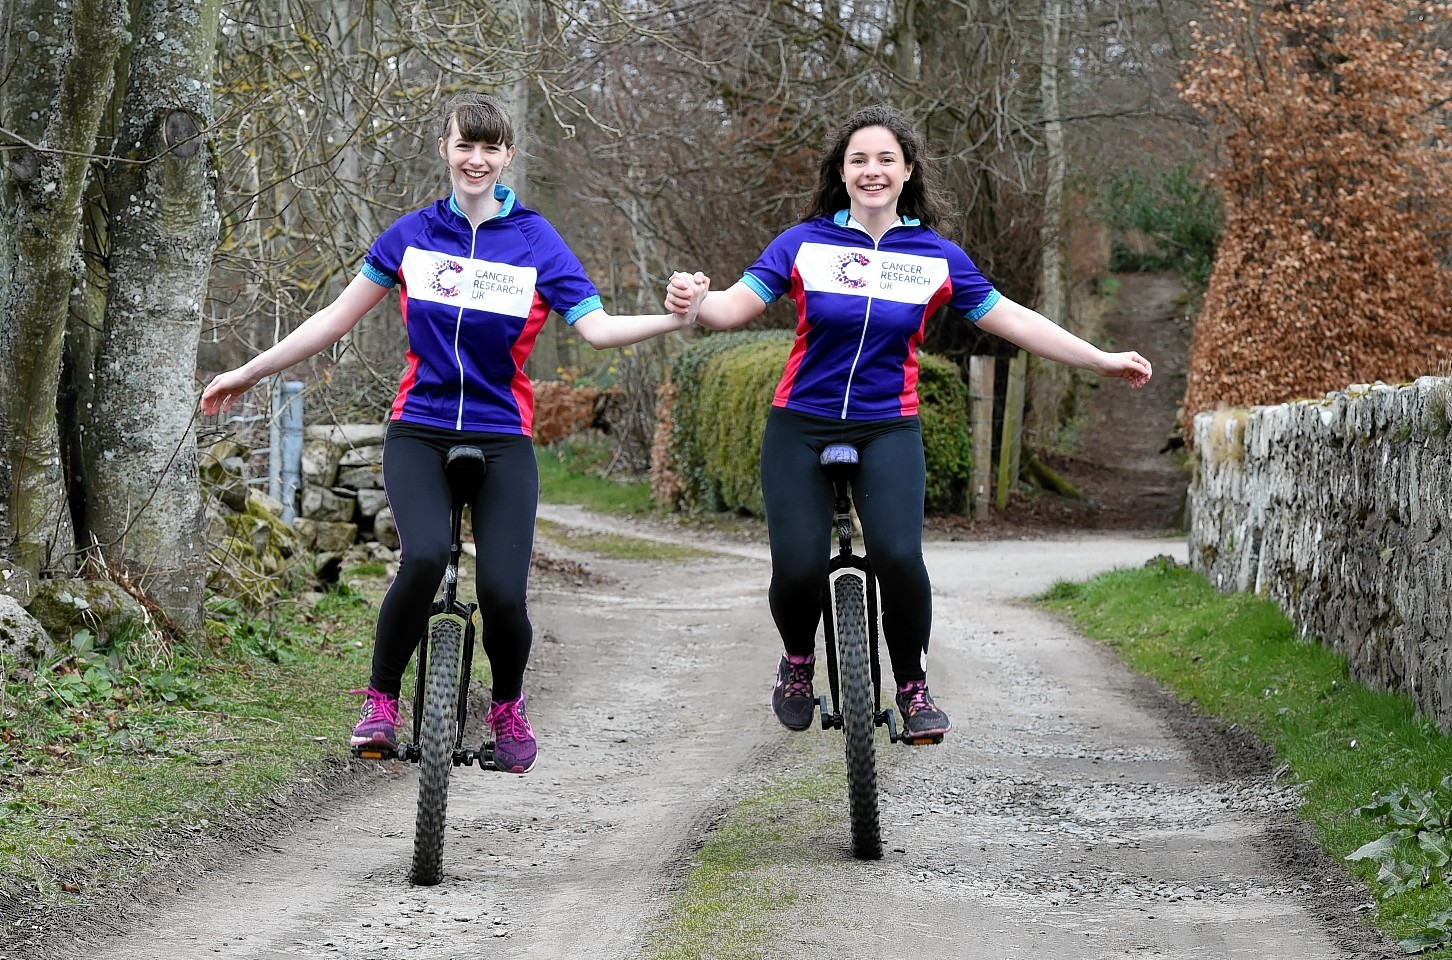 Fundraisers Iona Copley and Gemma Shaw on their unicycles.